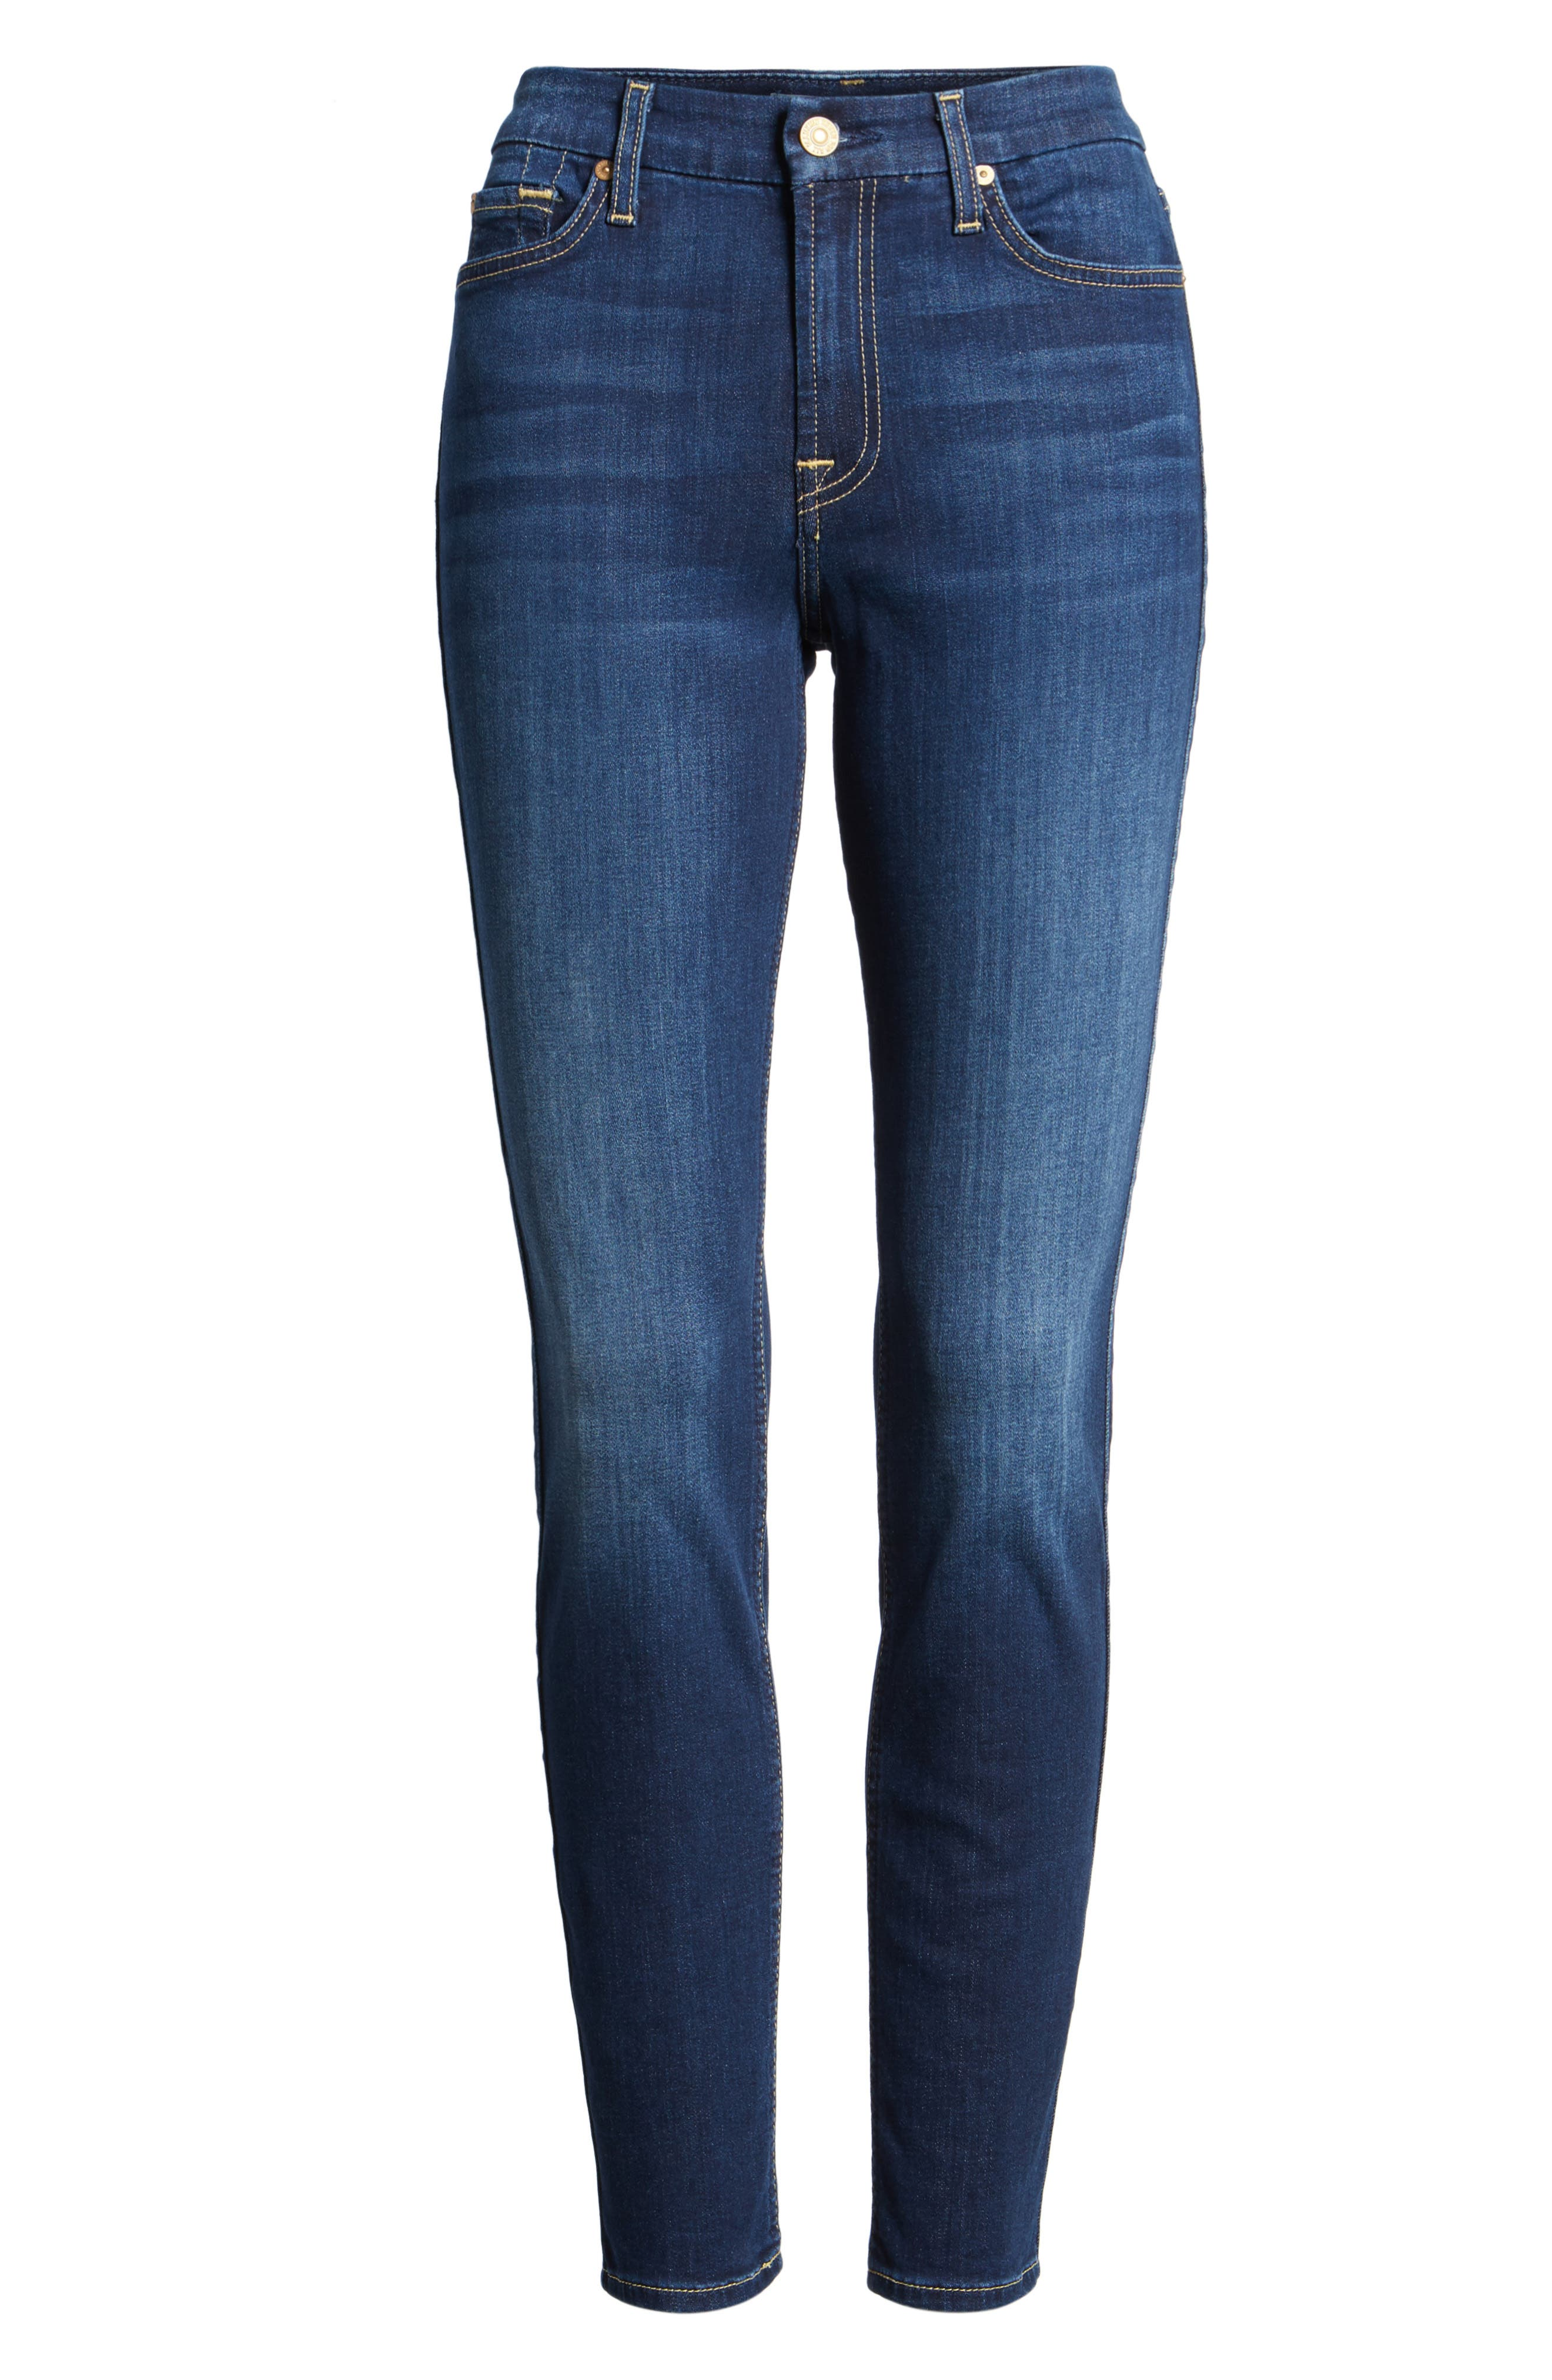 7 FOR ALL MANKIND<SUP>®</SUP>, b(air) Ankle Skinny Jeans, Alternate thumbnail 7, color, 400